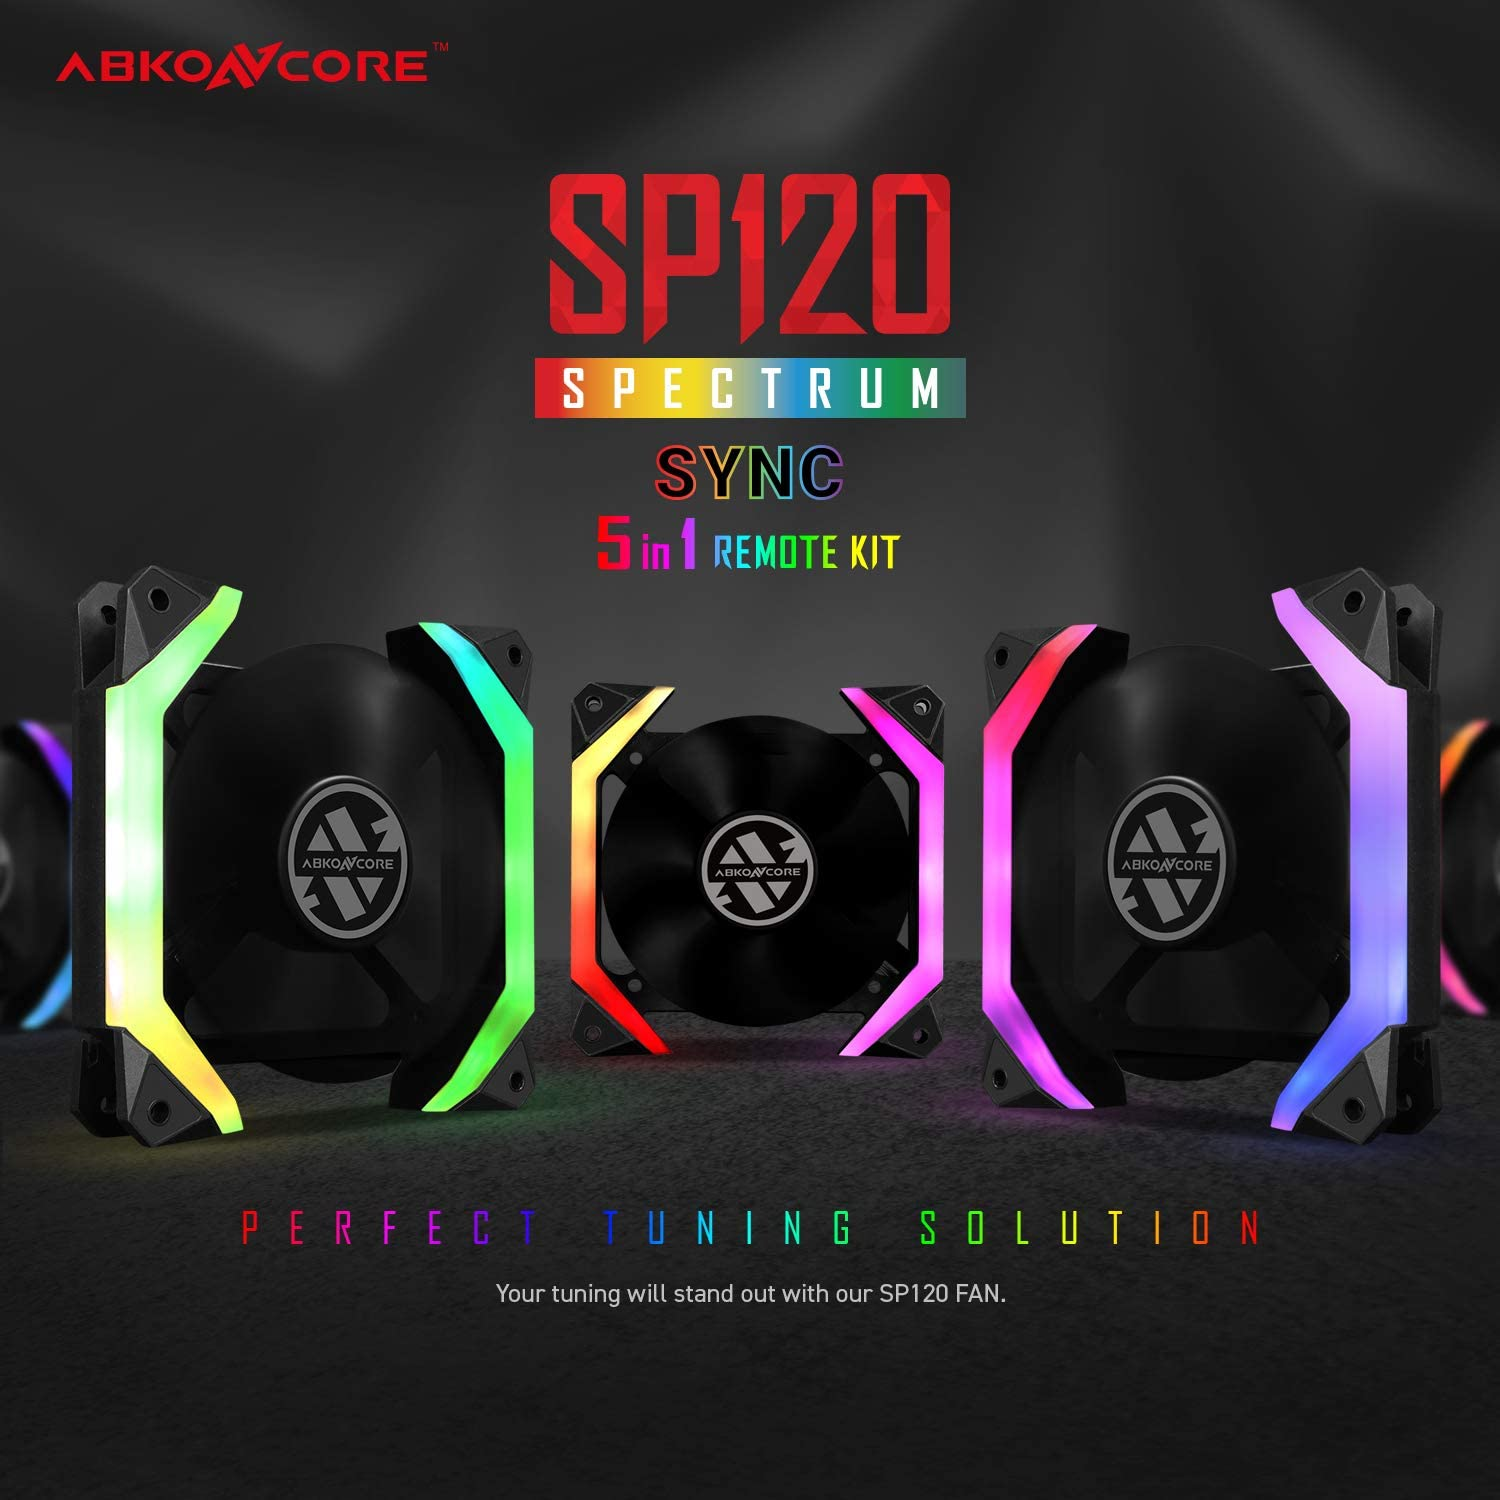 50 LED Modes with Fan Control Hub 120mm-5 Pack SYNC PWM RGB 120mm Computer Fans with Spider-Shaped Frame PC Case RGB Fans ABKONCORE SP120 PC Fan